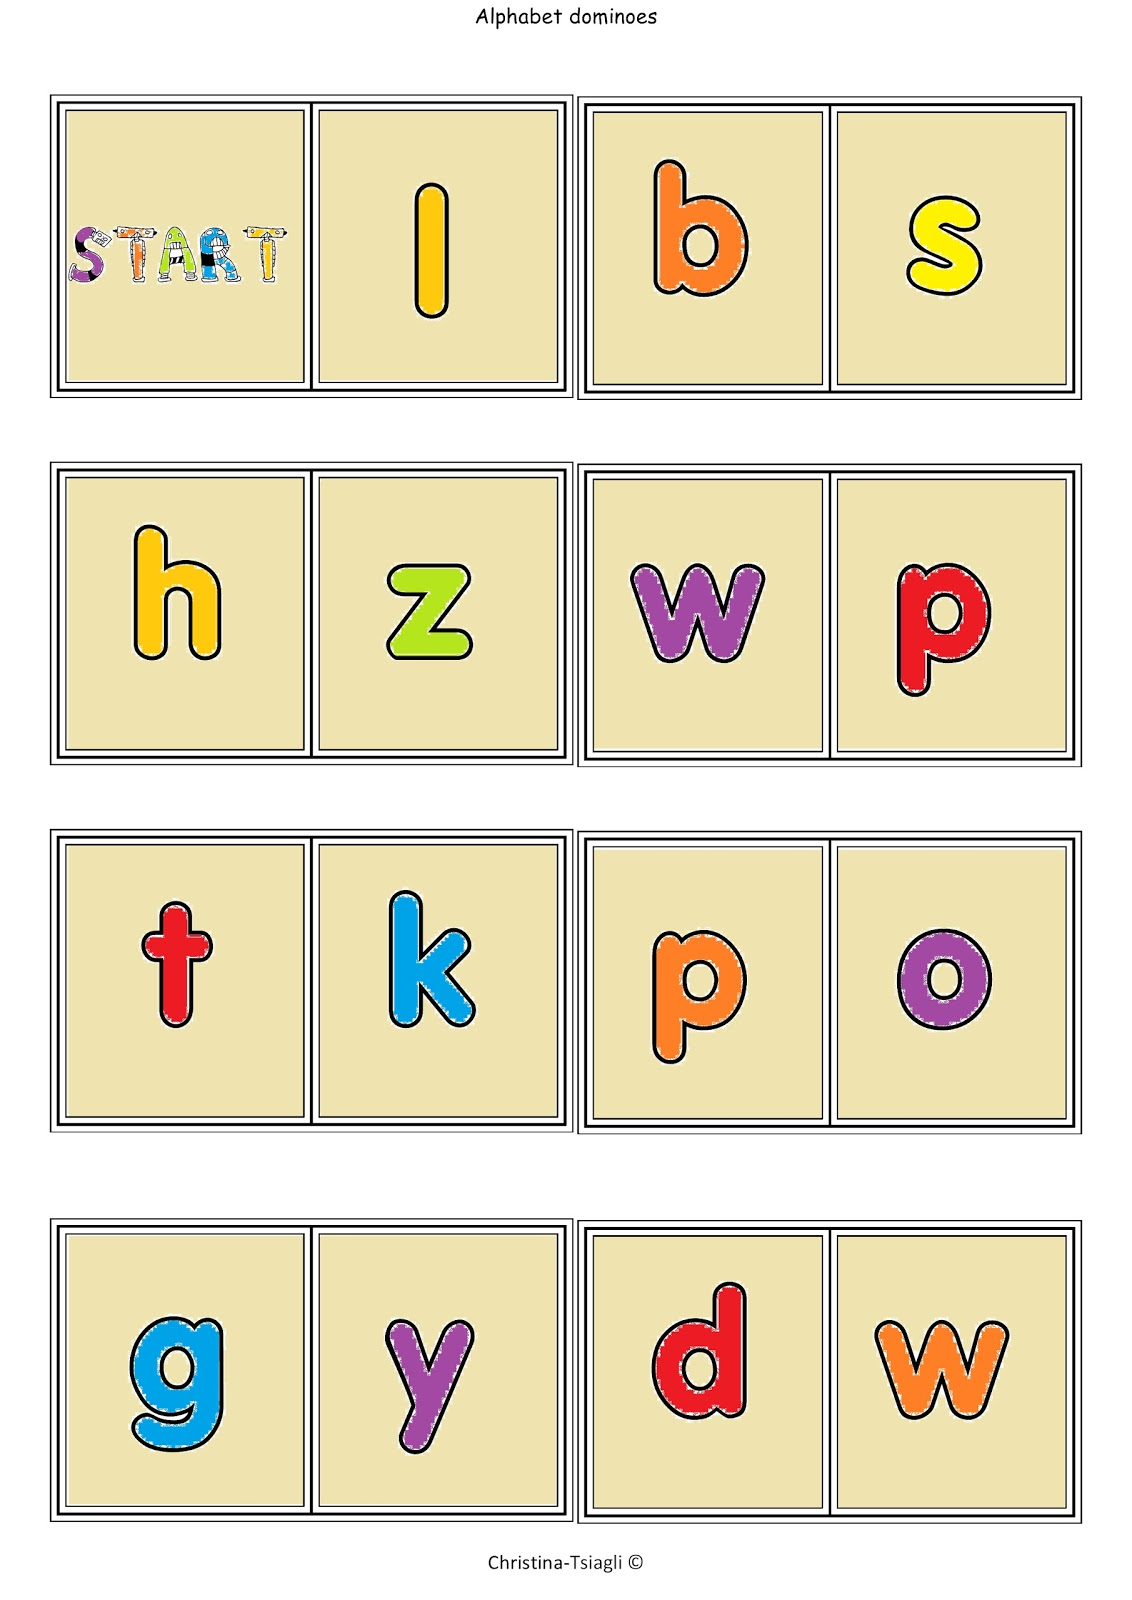 This is an image of Satisfactory Alphabet Games Printable